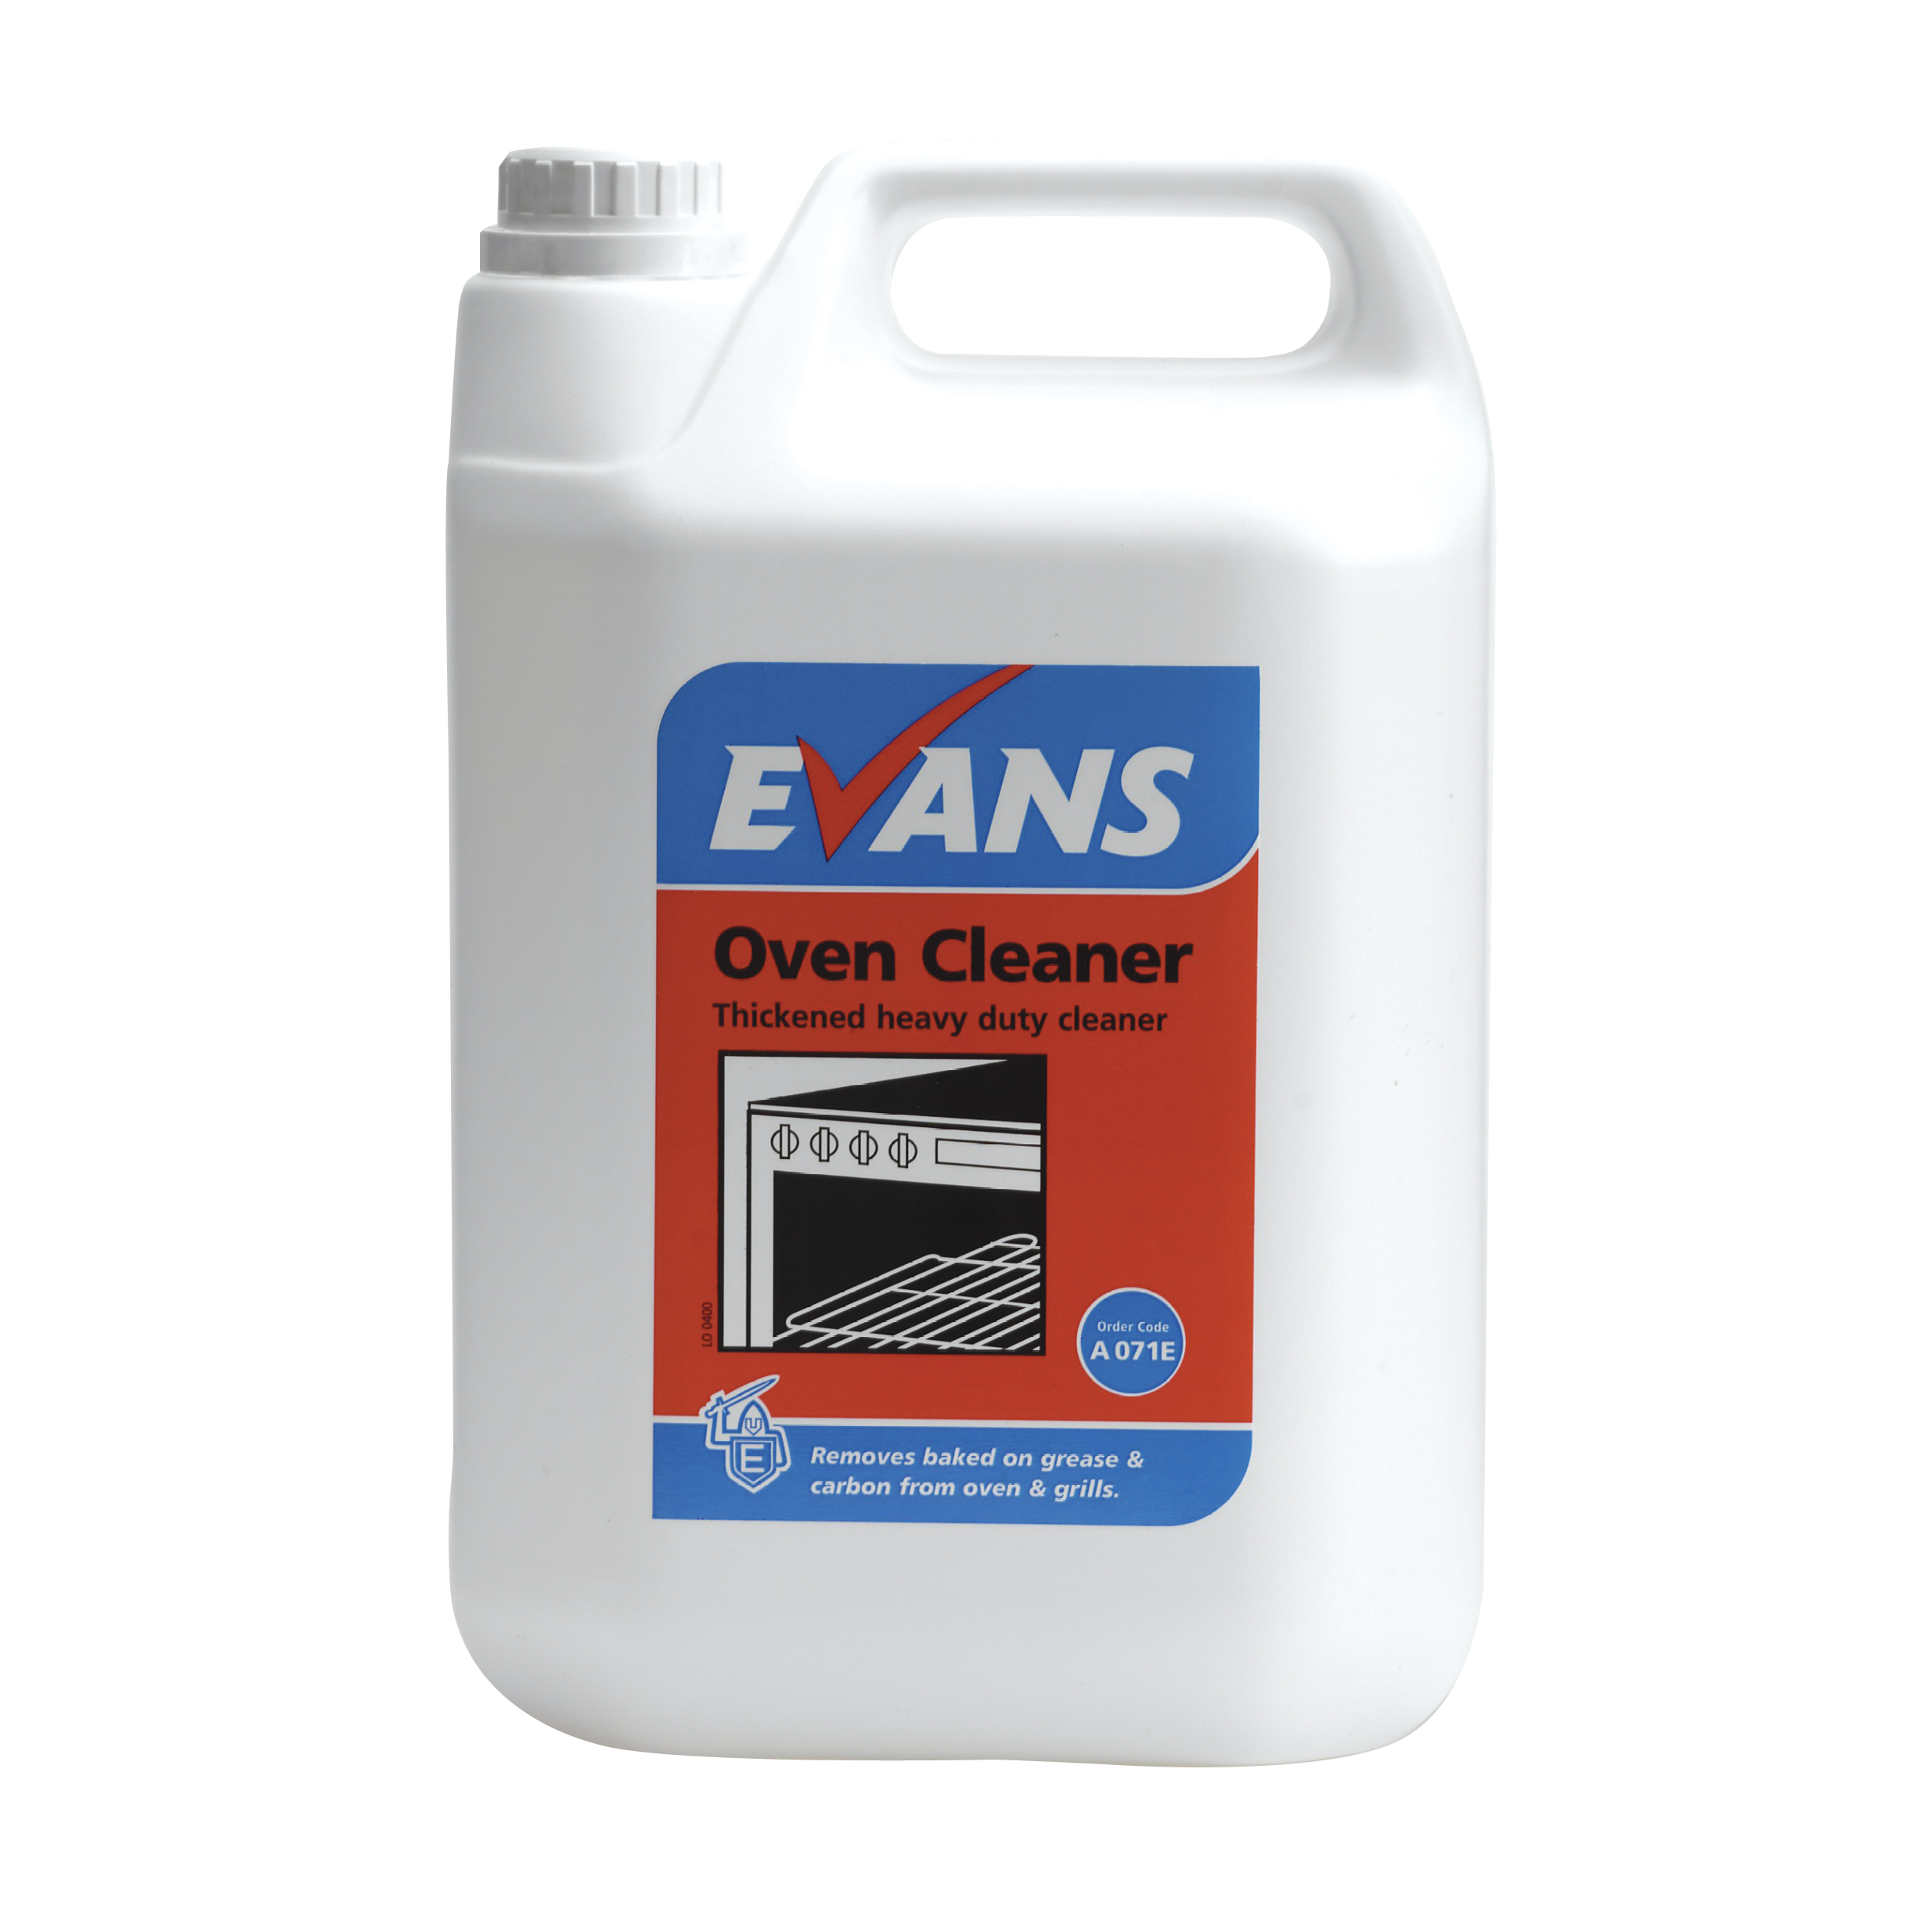 Evans Vanodine Oven Cleaner Thickened Heavy Duty Cleaner Removes Baked On Grease 5ltr